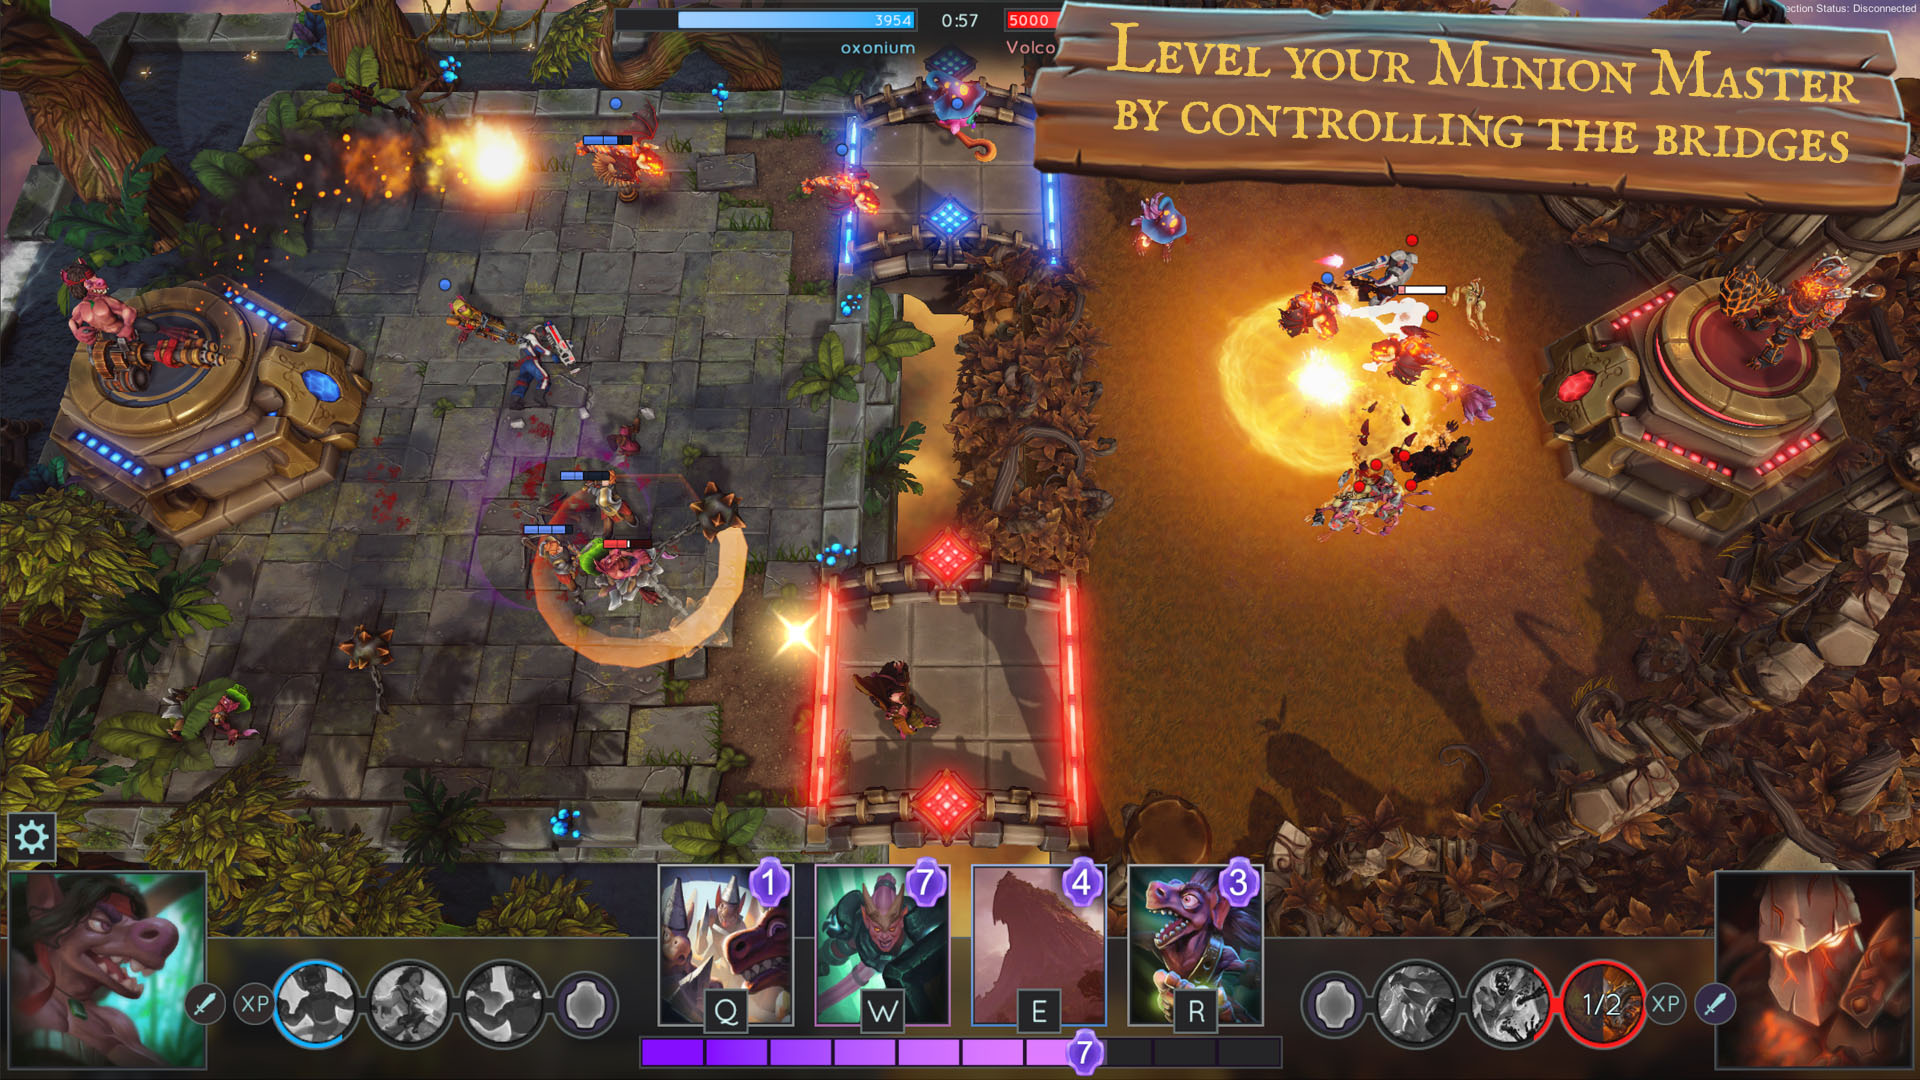 Minion Masters - A Fast-paced Online Minion Battle Game